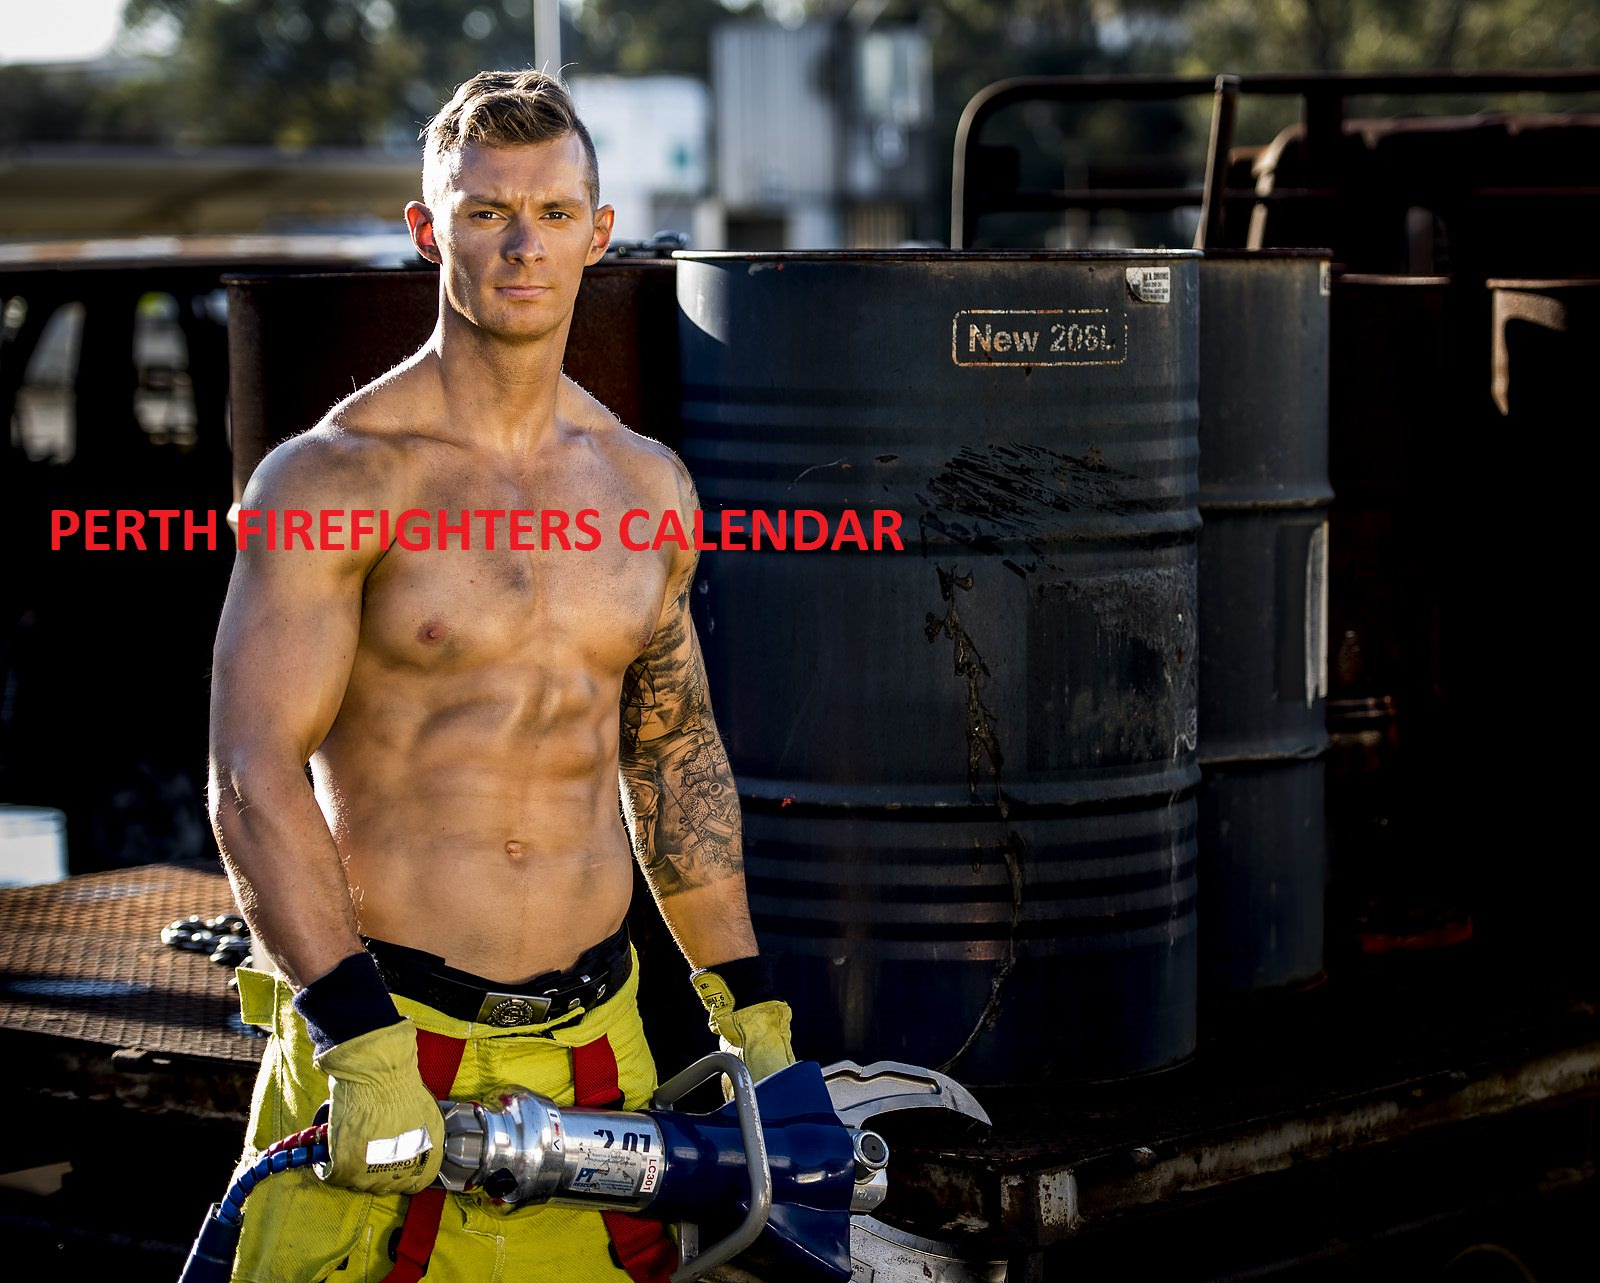 fireman calendar launch perth - My Blog About May2018 ...